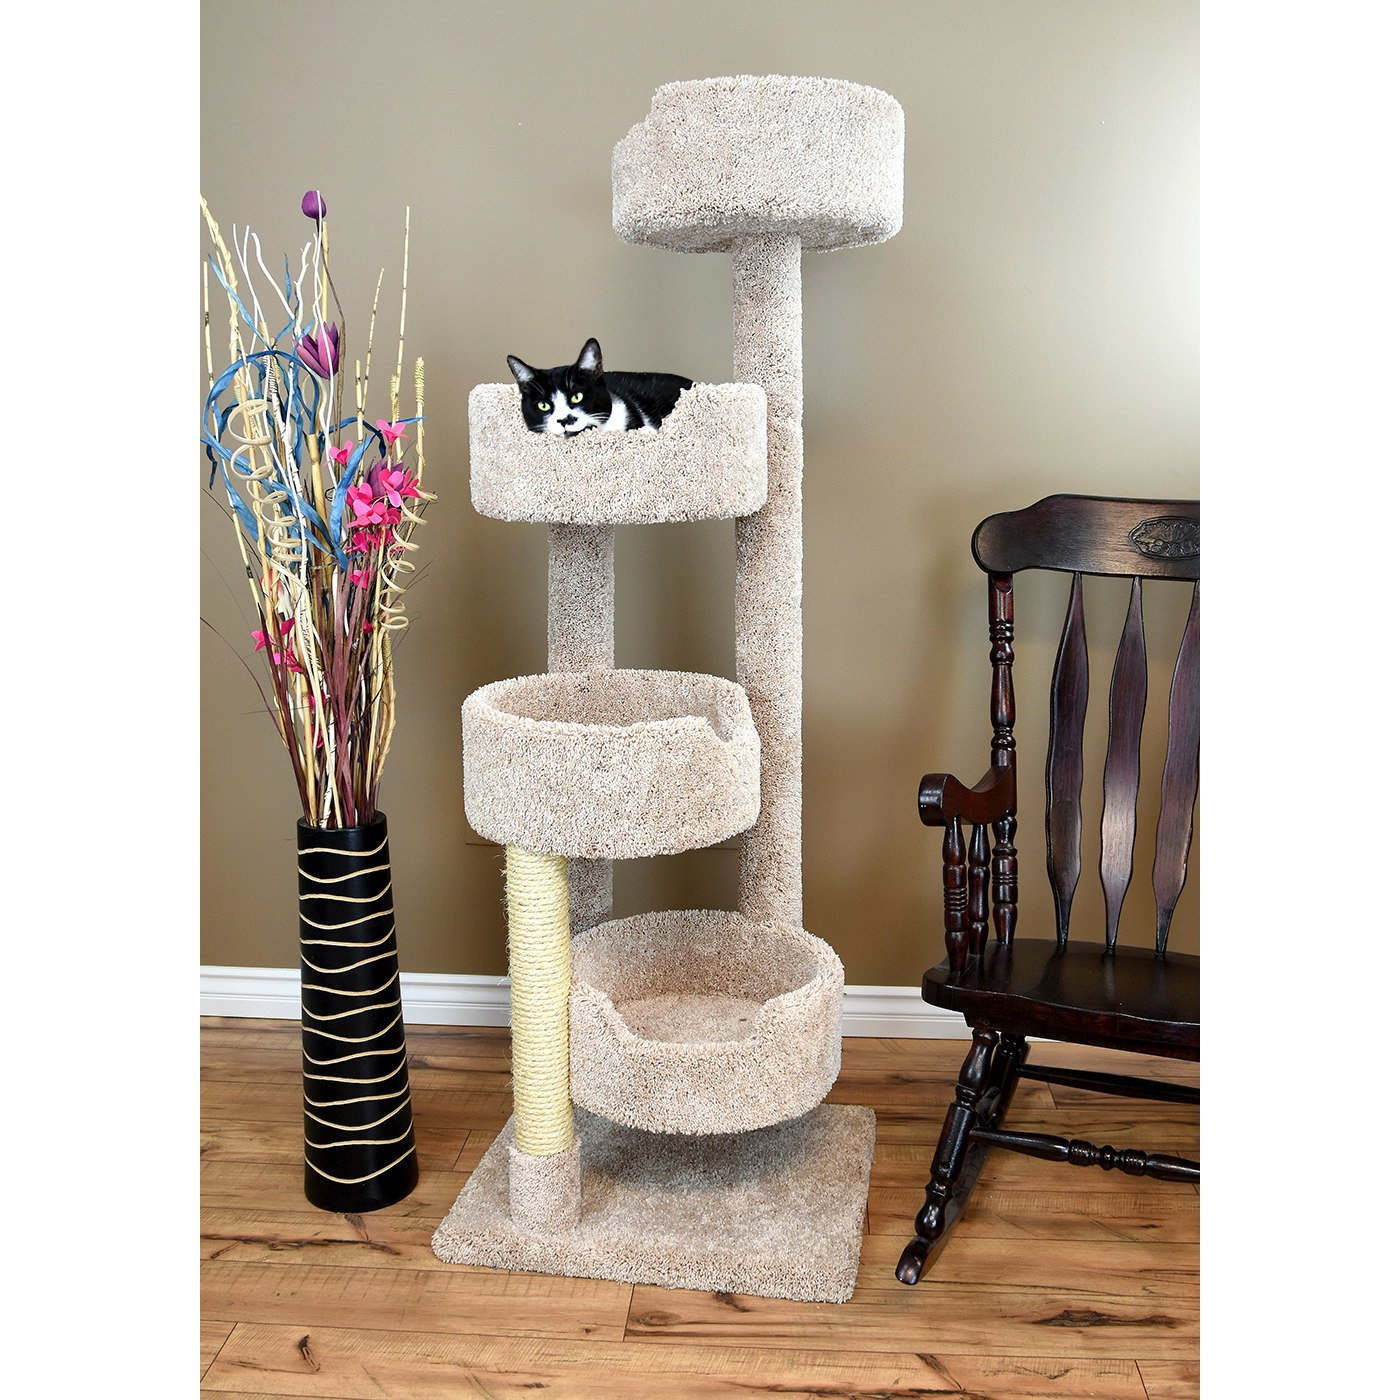 1 Piece Beige 65 Inches High Comfort Scratcher Cat Condo, Light Brown Color Pet Stairway Tower Tree Round Perch Bed Kitty House, Unique Cozy Relax 4 Spacious Perches Carpet, Sisal Rope Wood